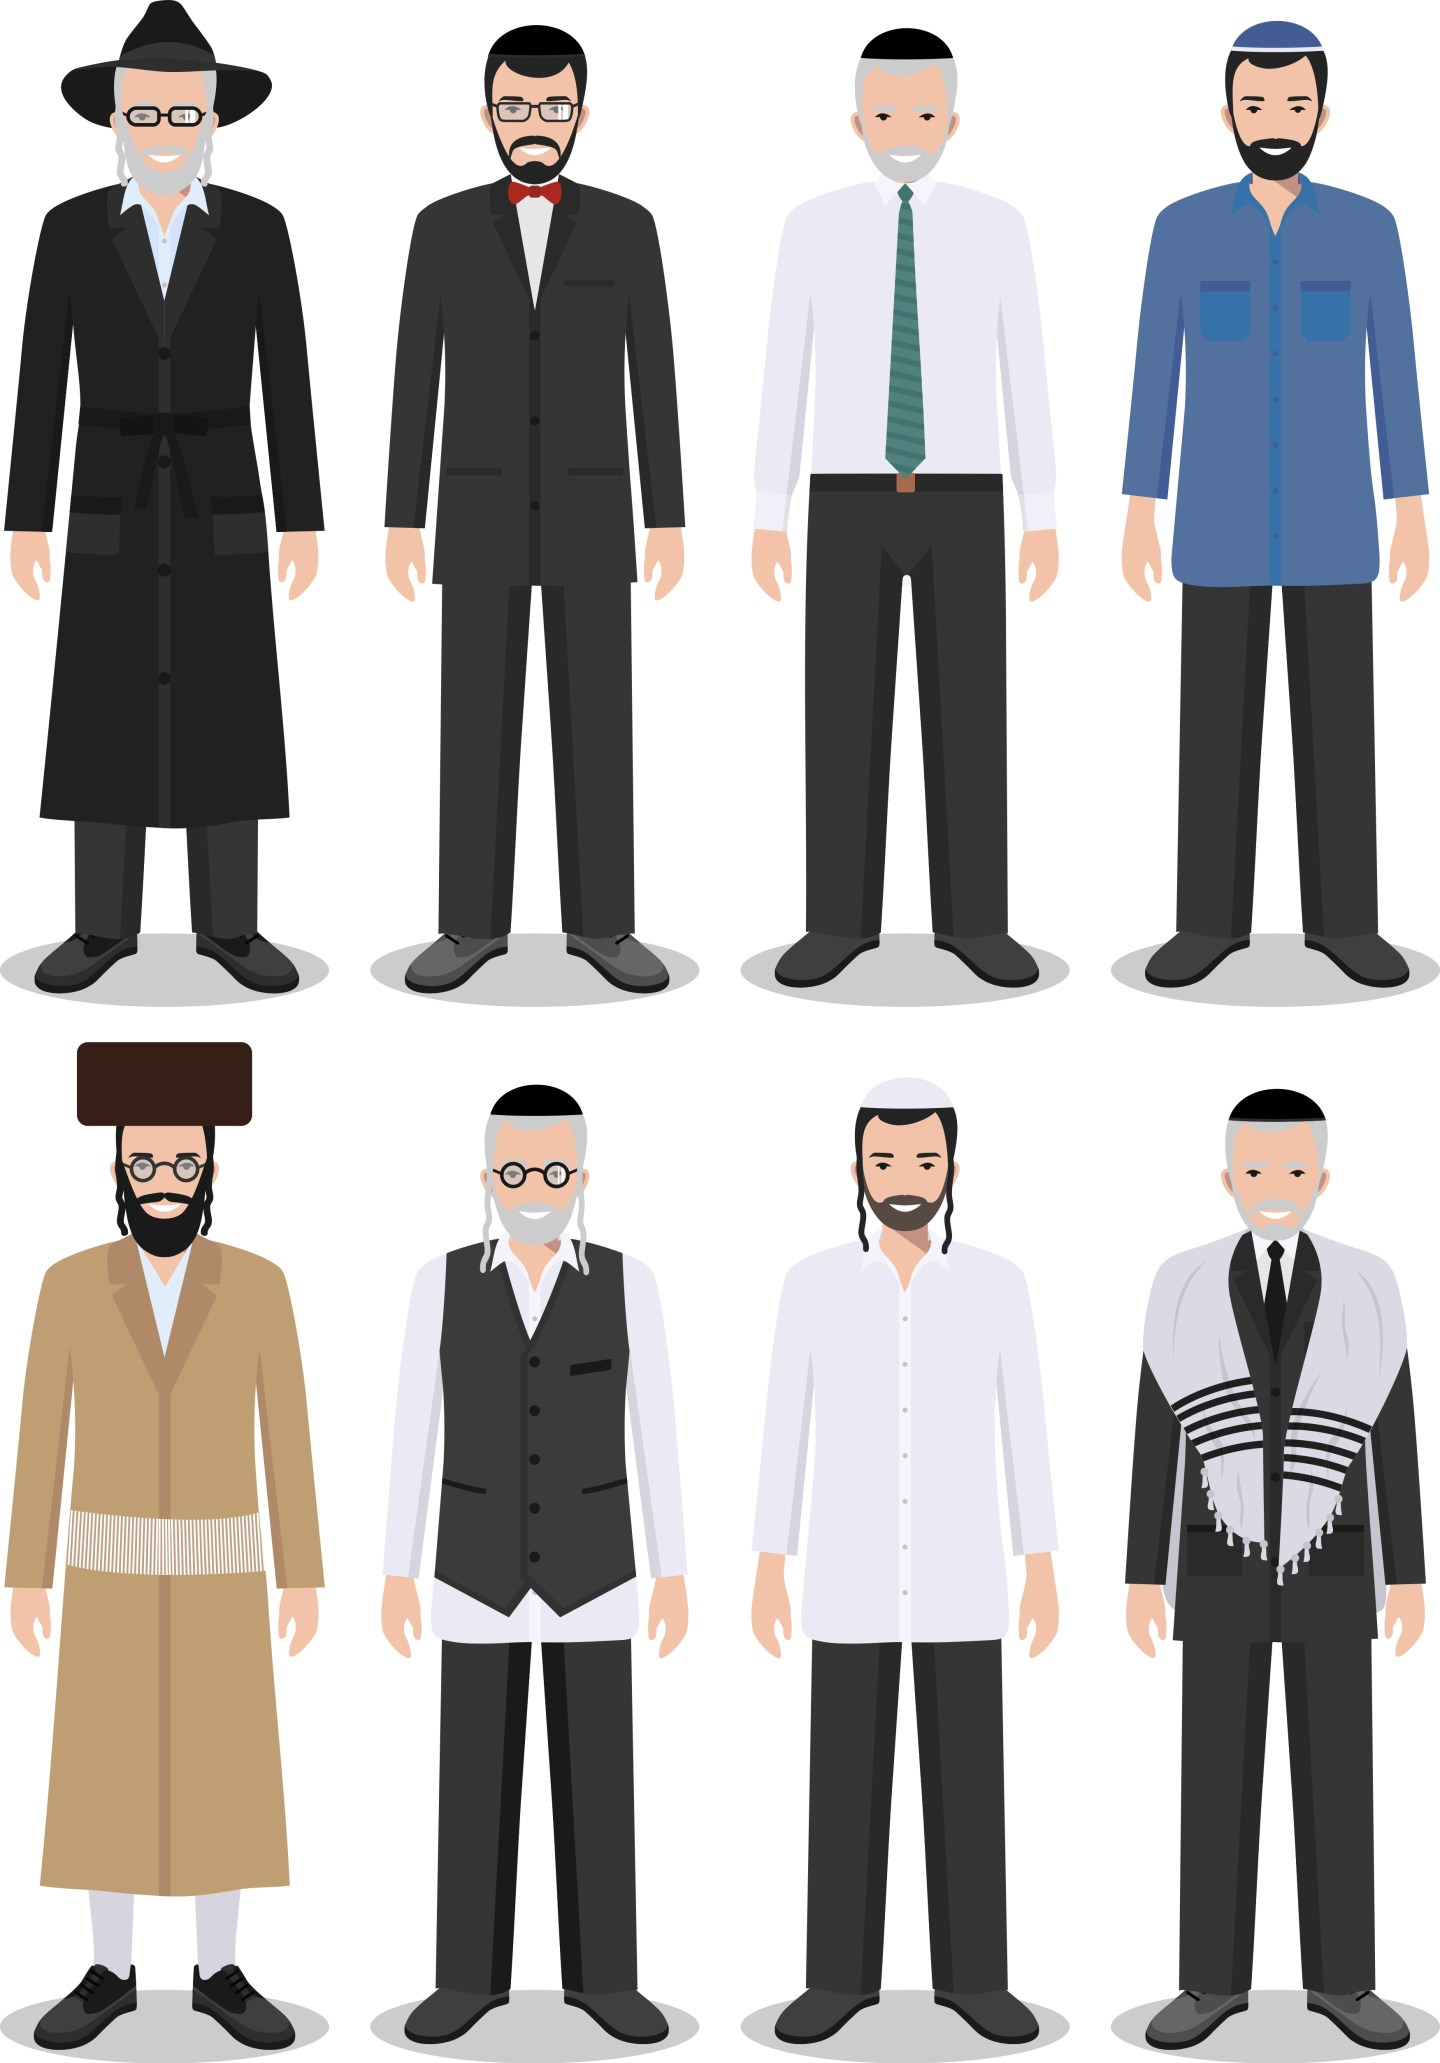 Jewish men different outfits